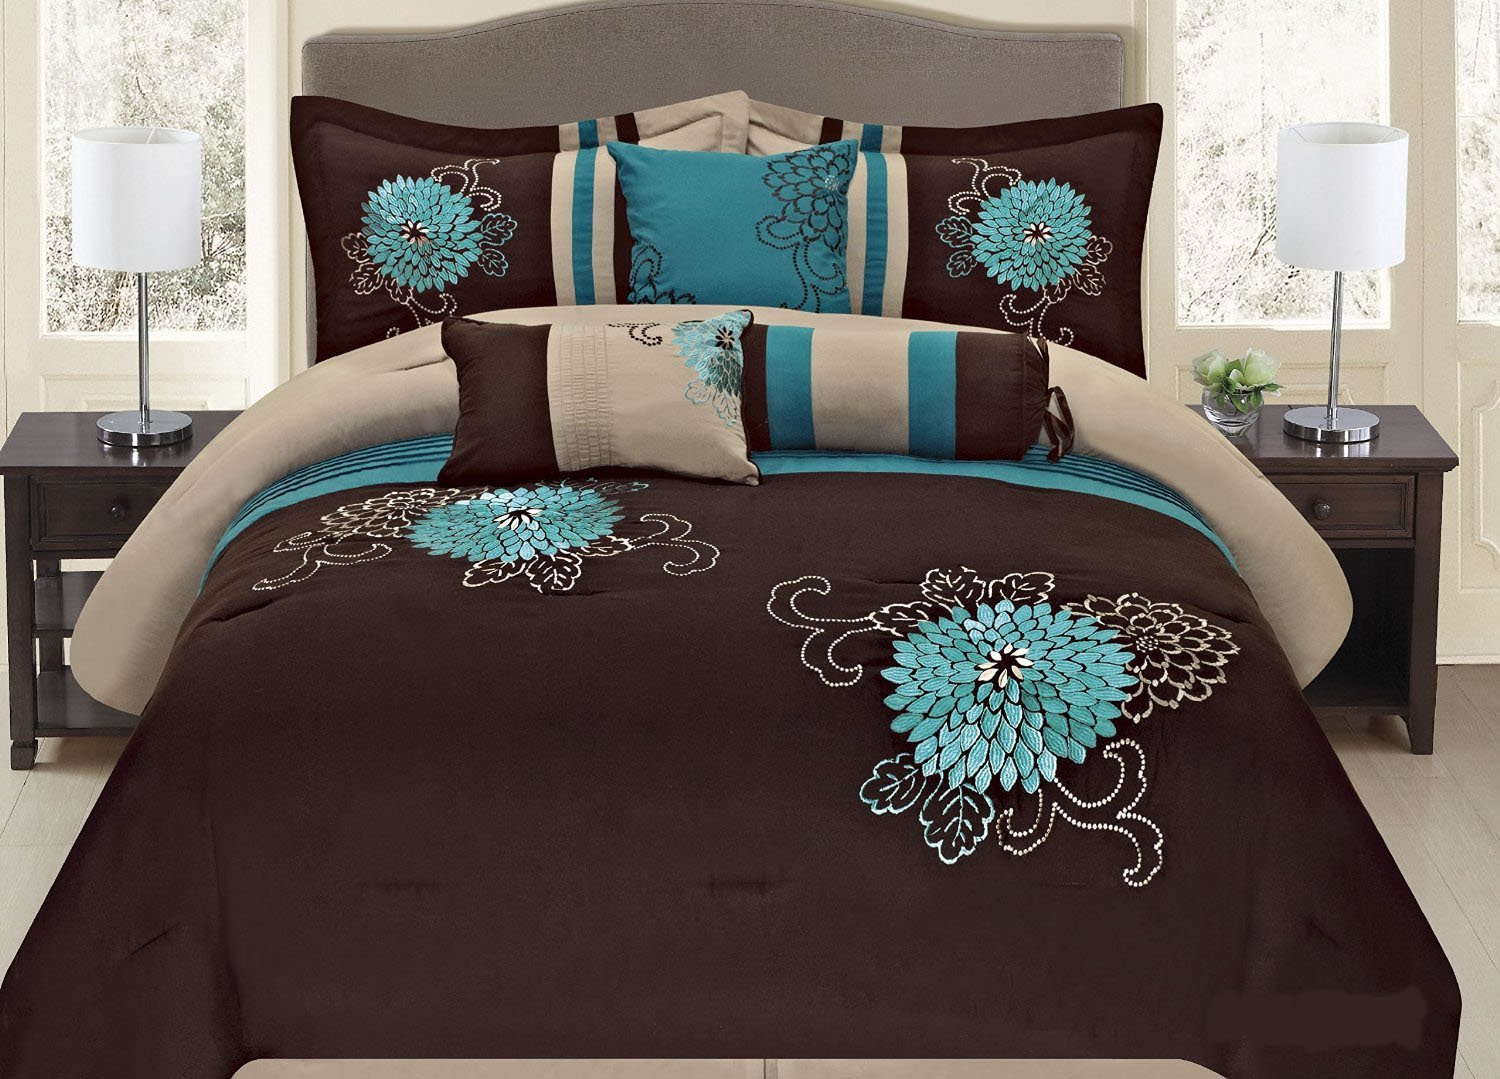 Fancy Collection 7-pc Embroidery Bedding Brown Turquoise Comforter Set (Queen